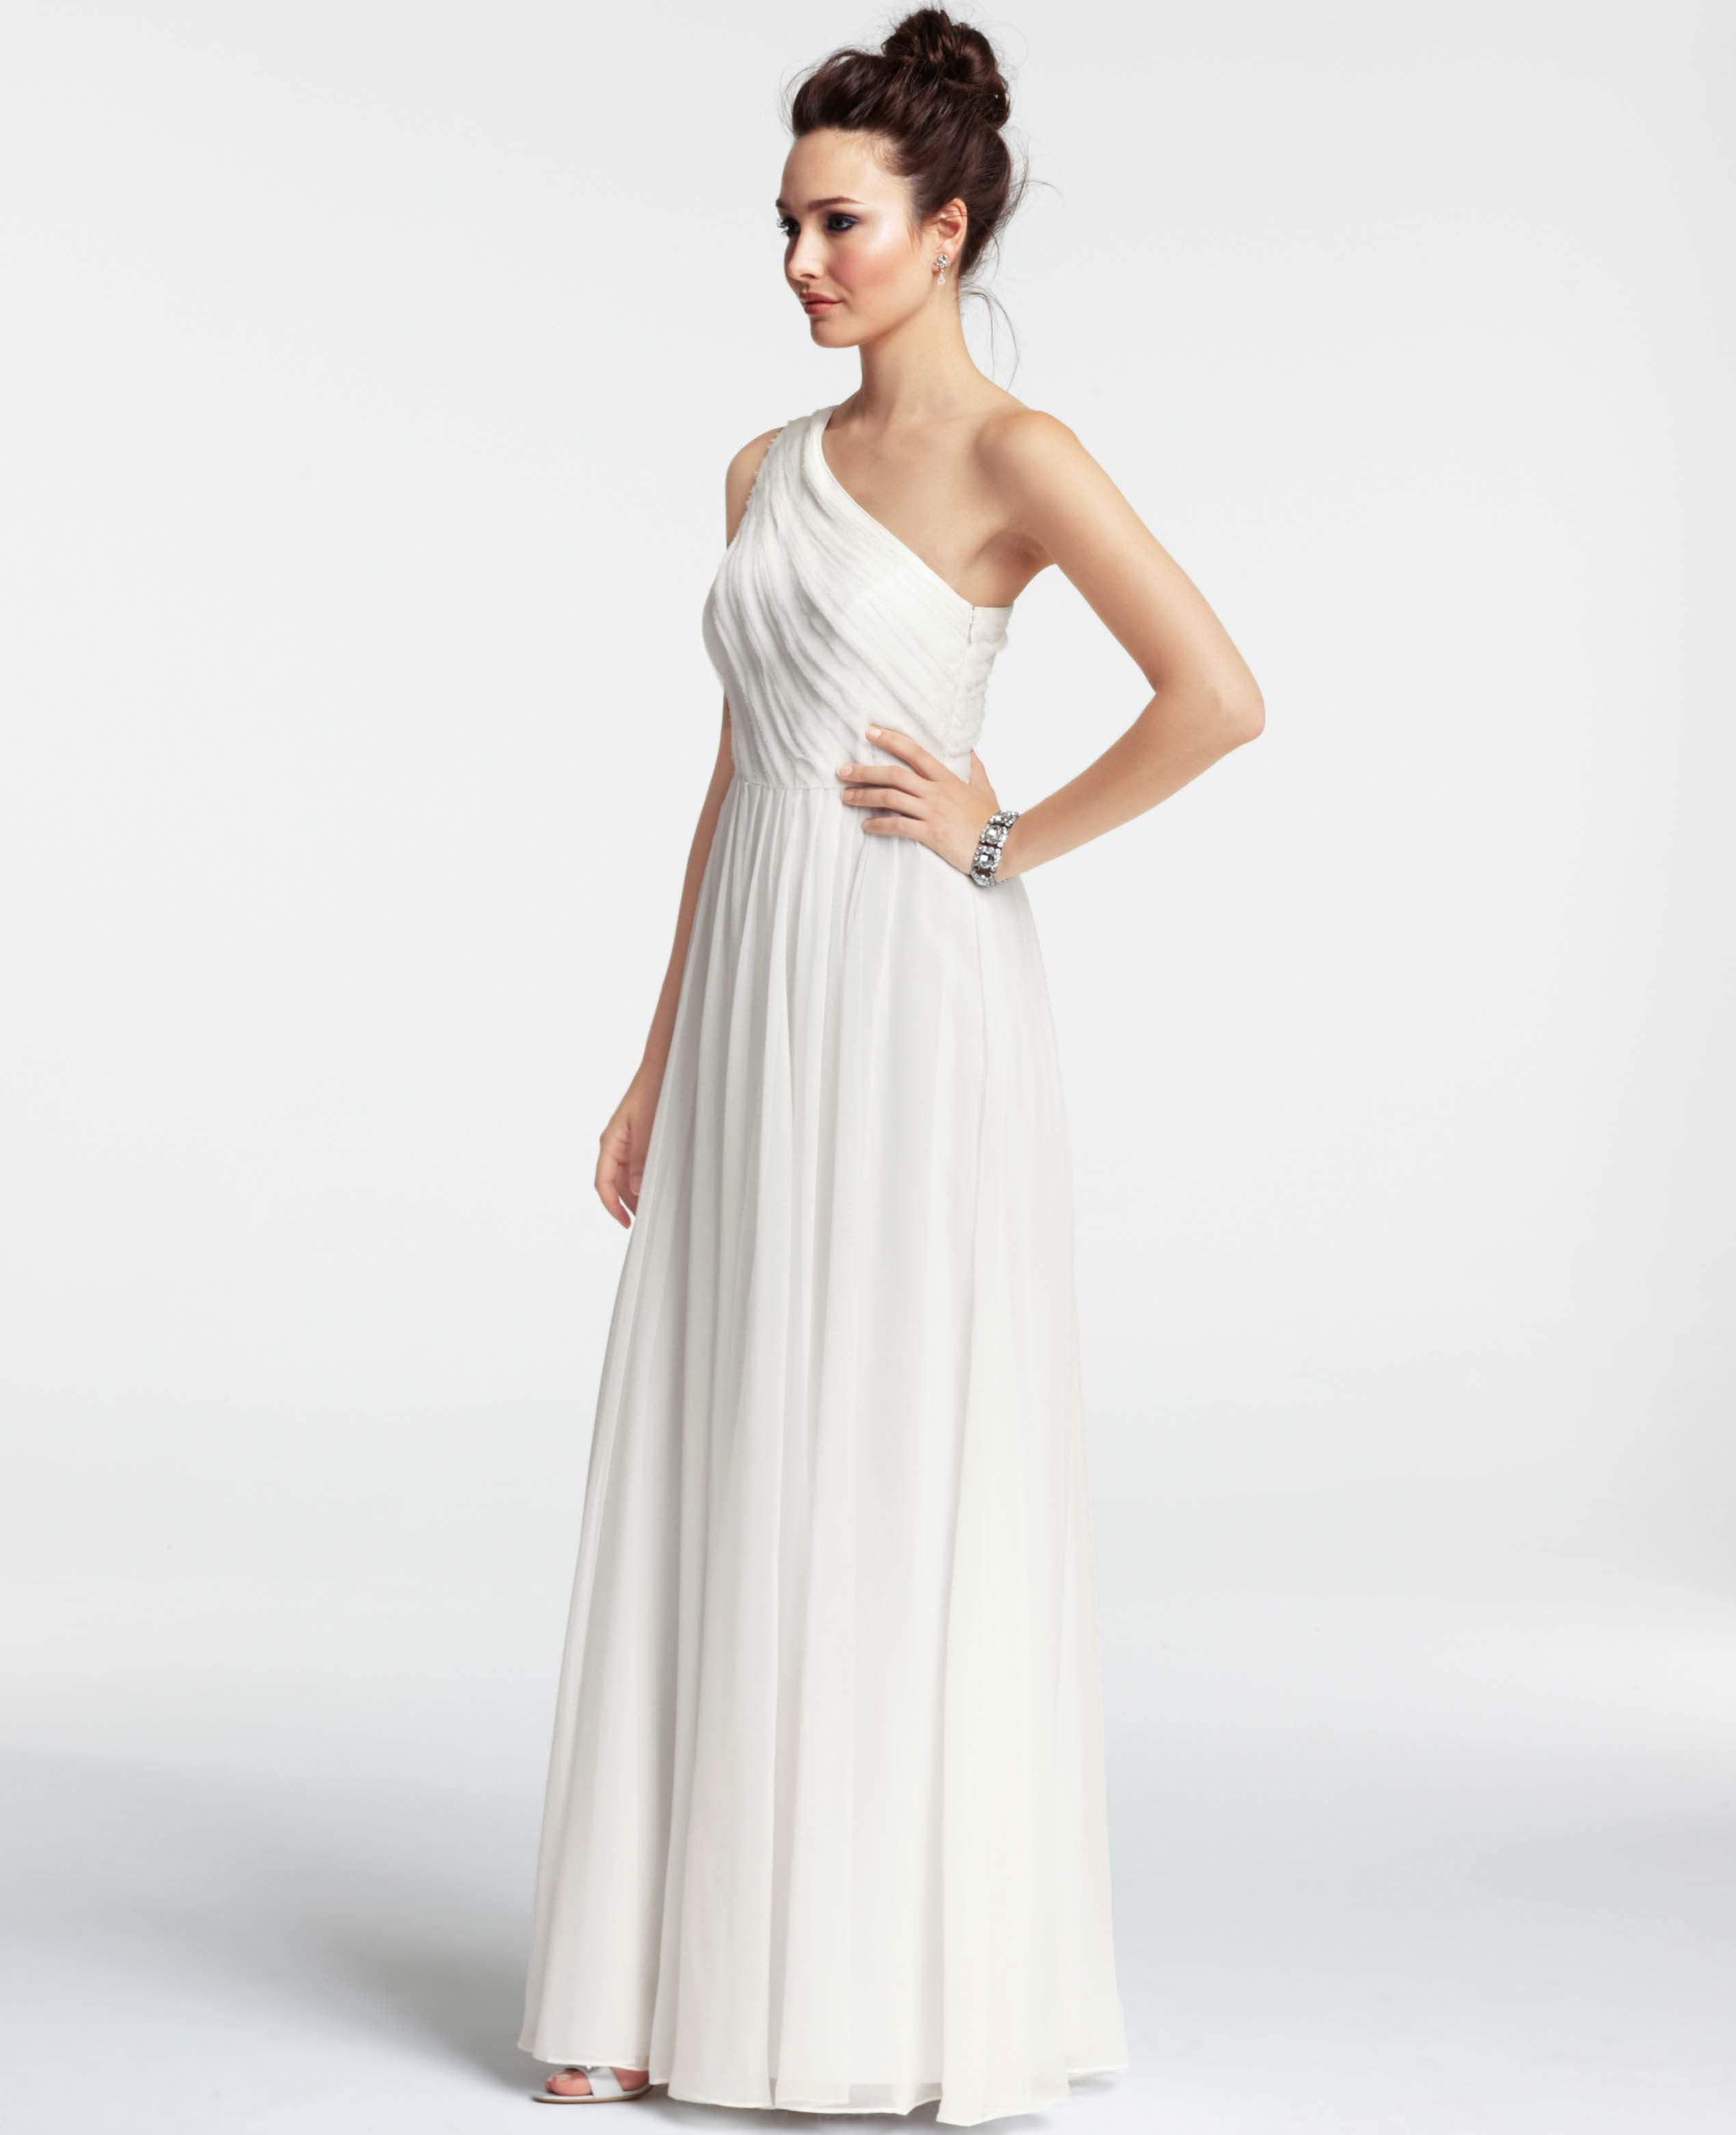 Ann taylor silk georgette pleated one shoulder gown in for Ann taylor dresses wedding